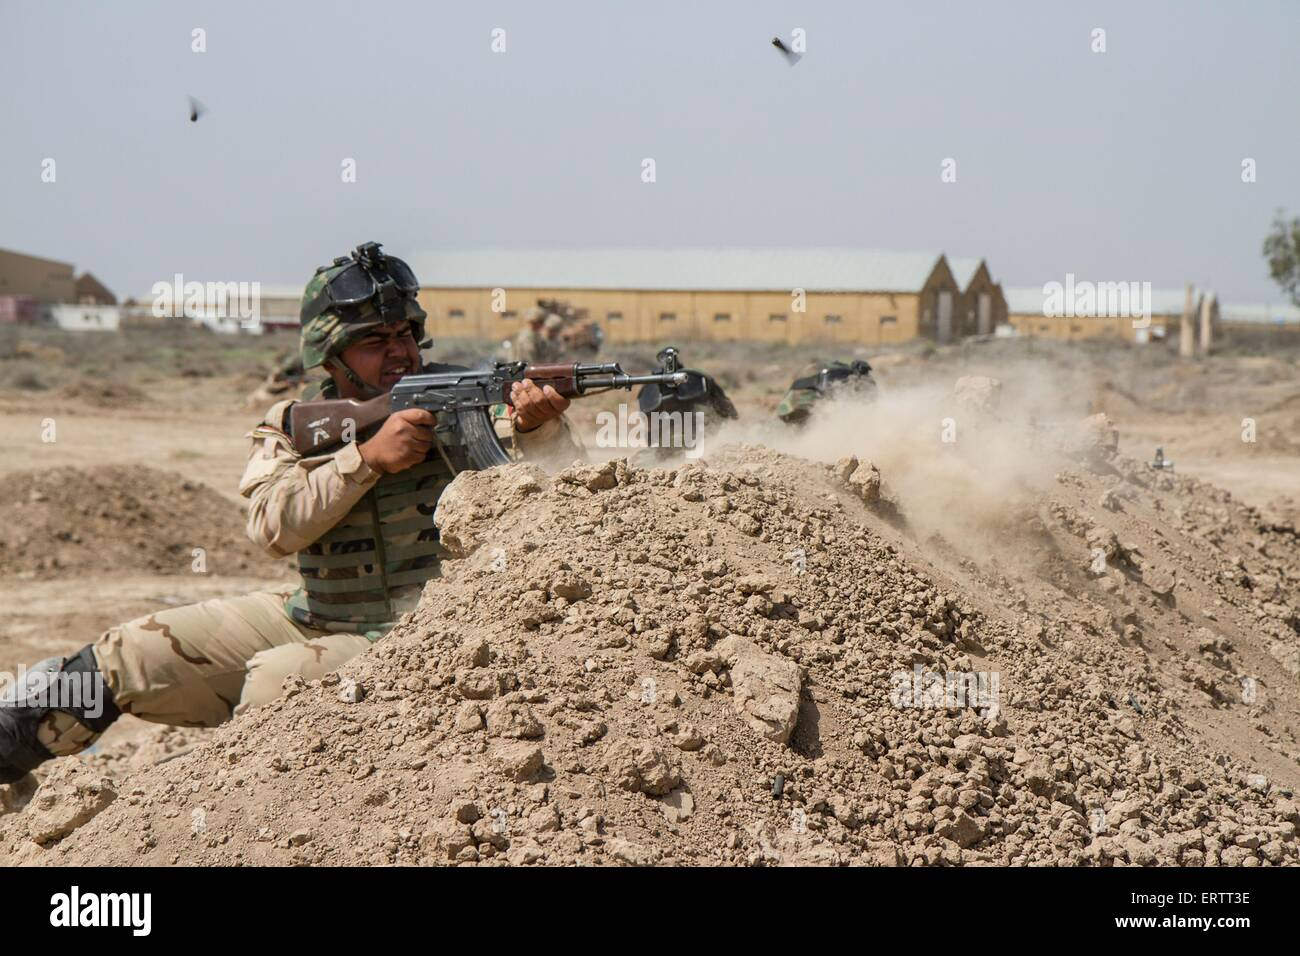 Iraqi army soldiers practice combat techniques during training at Camp Taji outside Baghdad April 16, 2015 in Al - Stock Image